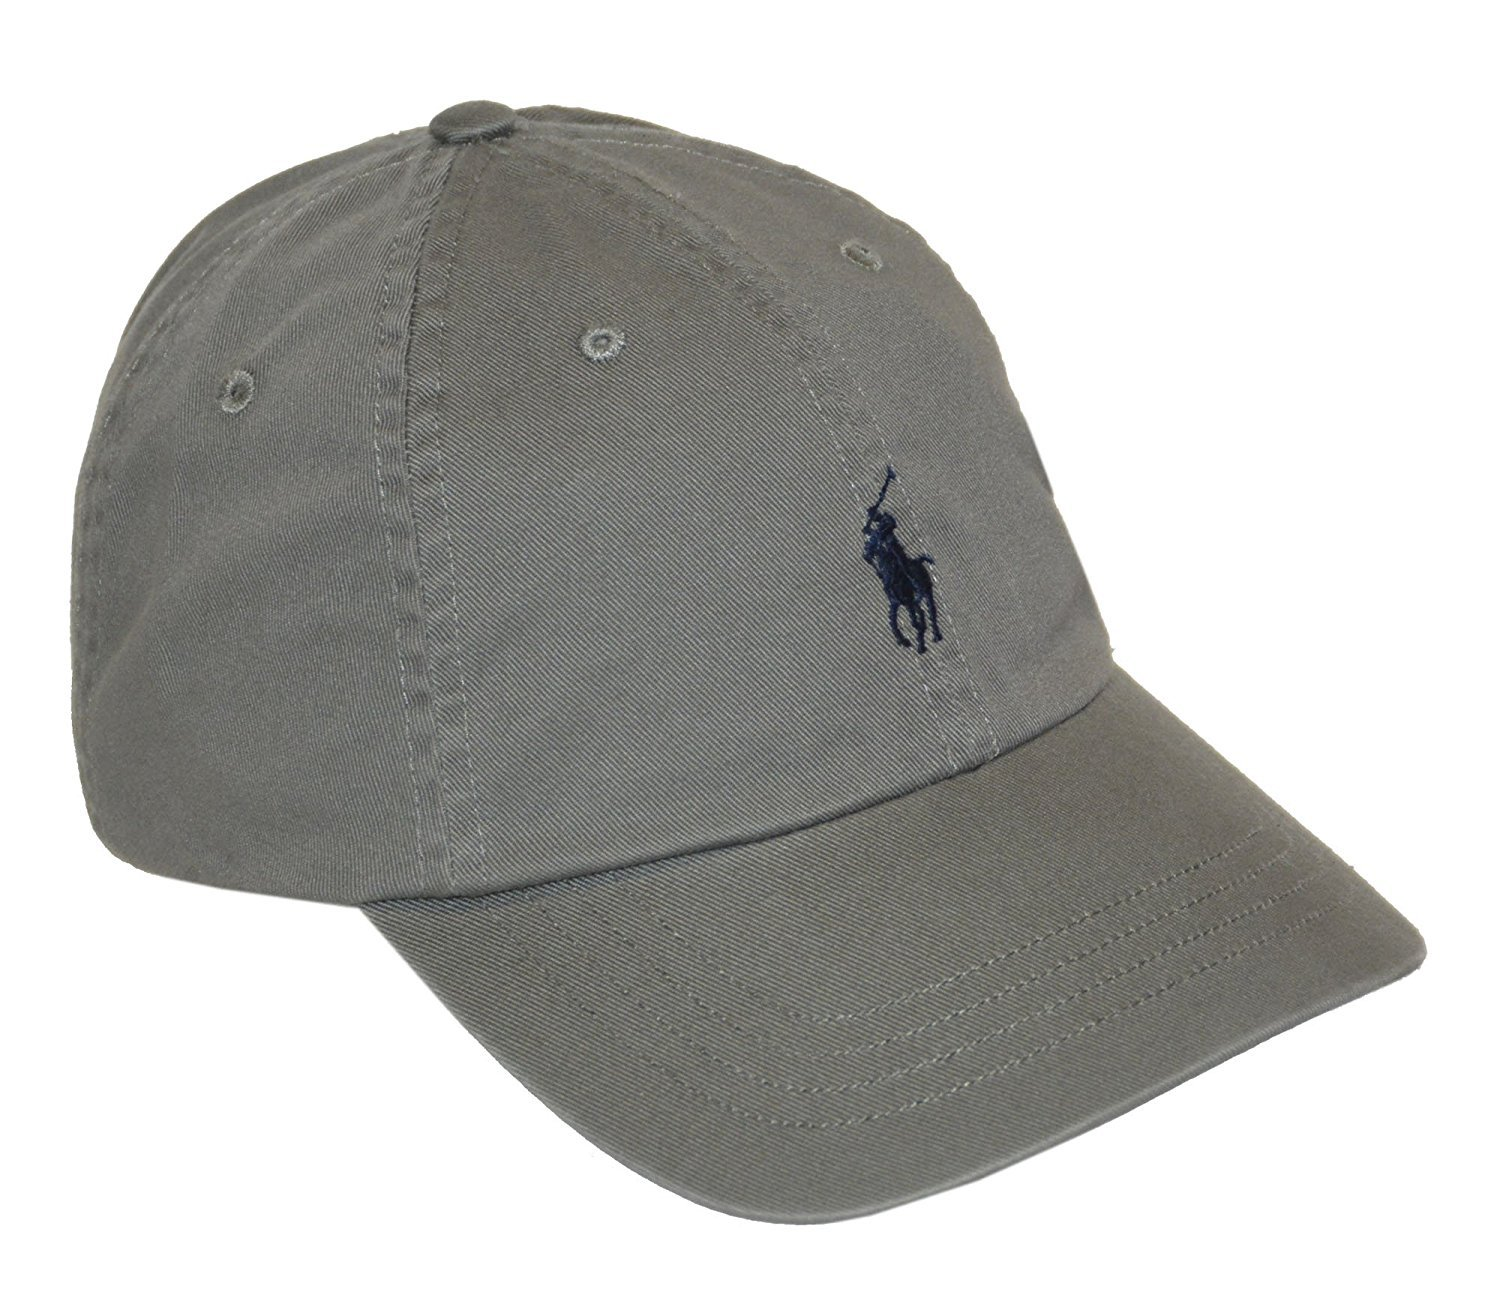 Polo Ralph Lauren Men\u0027s Pony Logo Hat Cap, College Grey One Size Adjustable